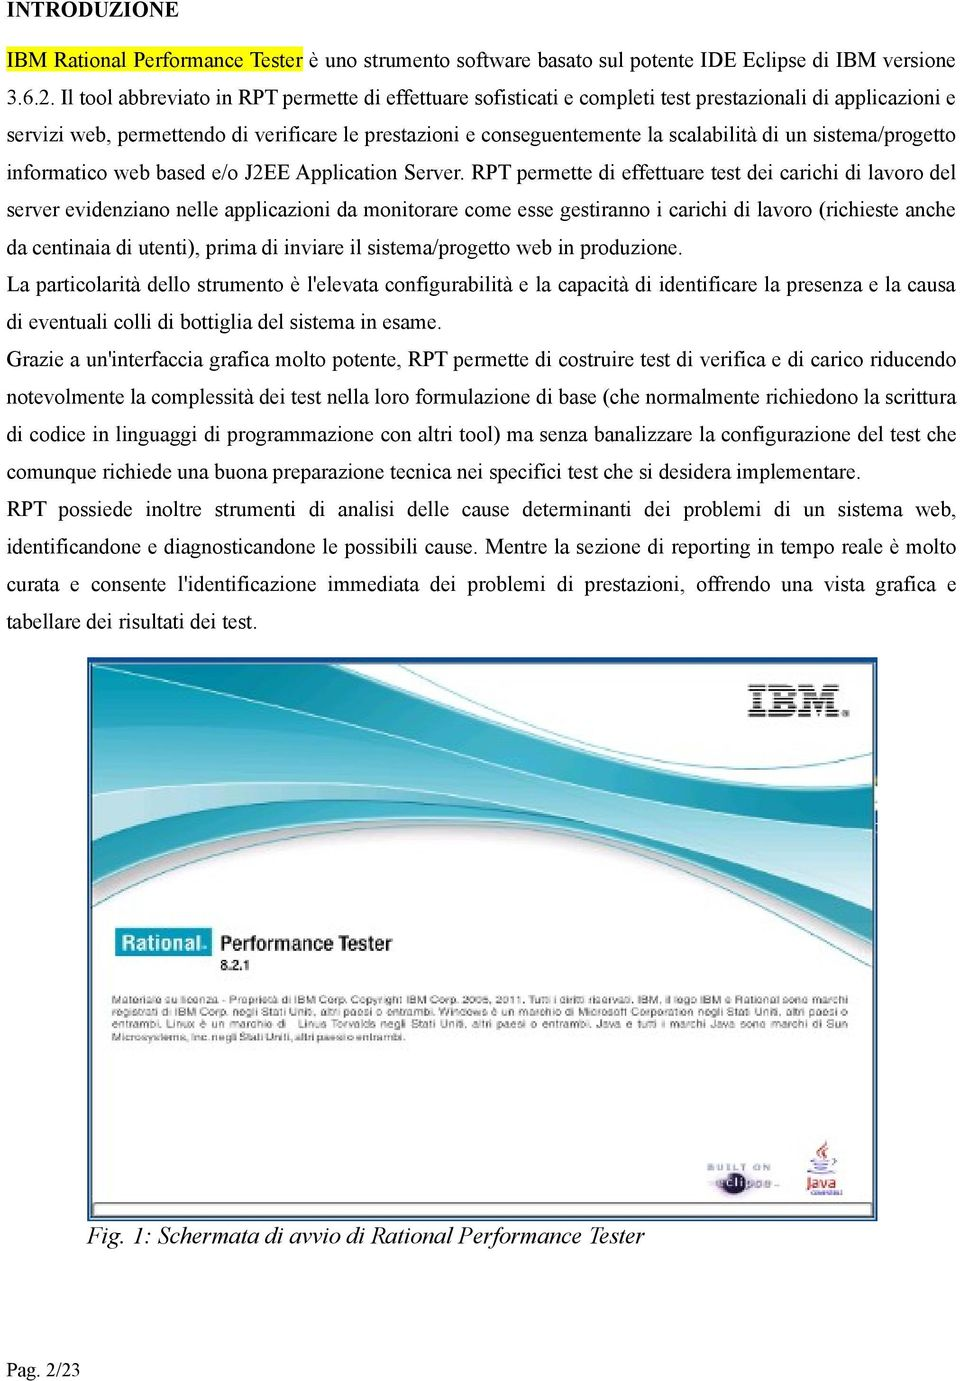 un sistema/progetto informatico web based e/o J2EE Application Server.